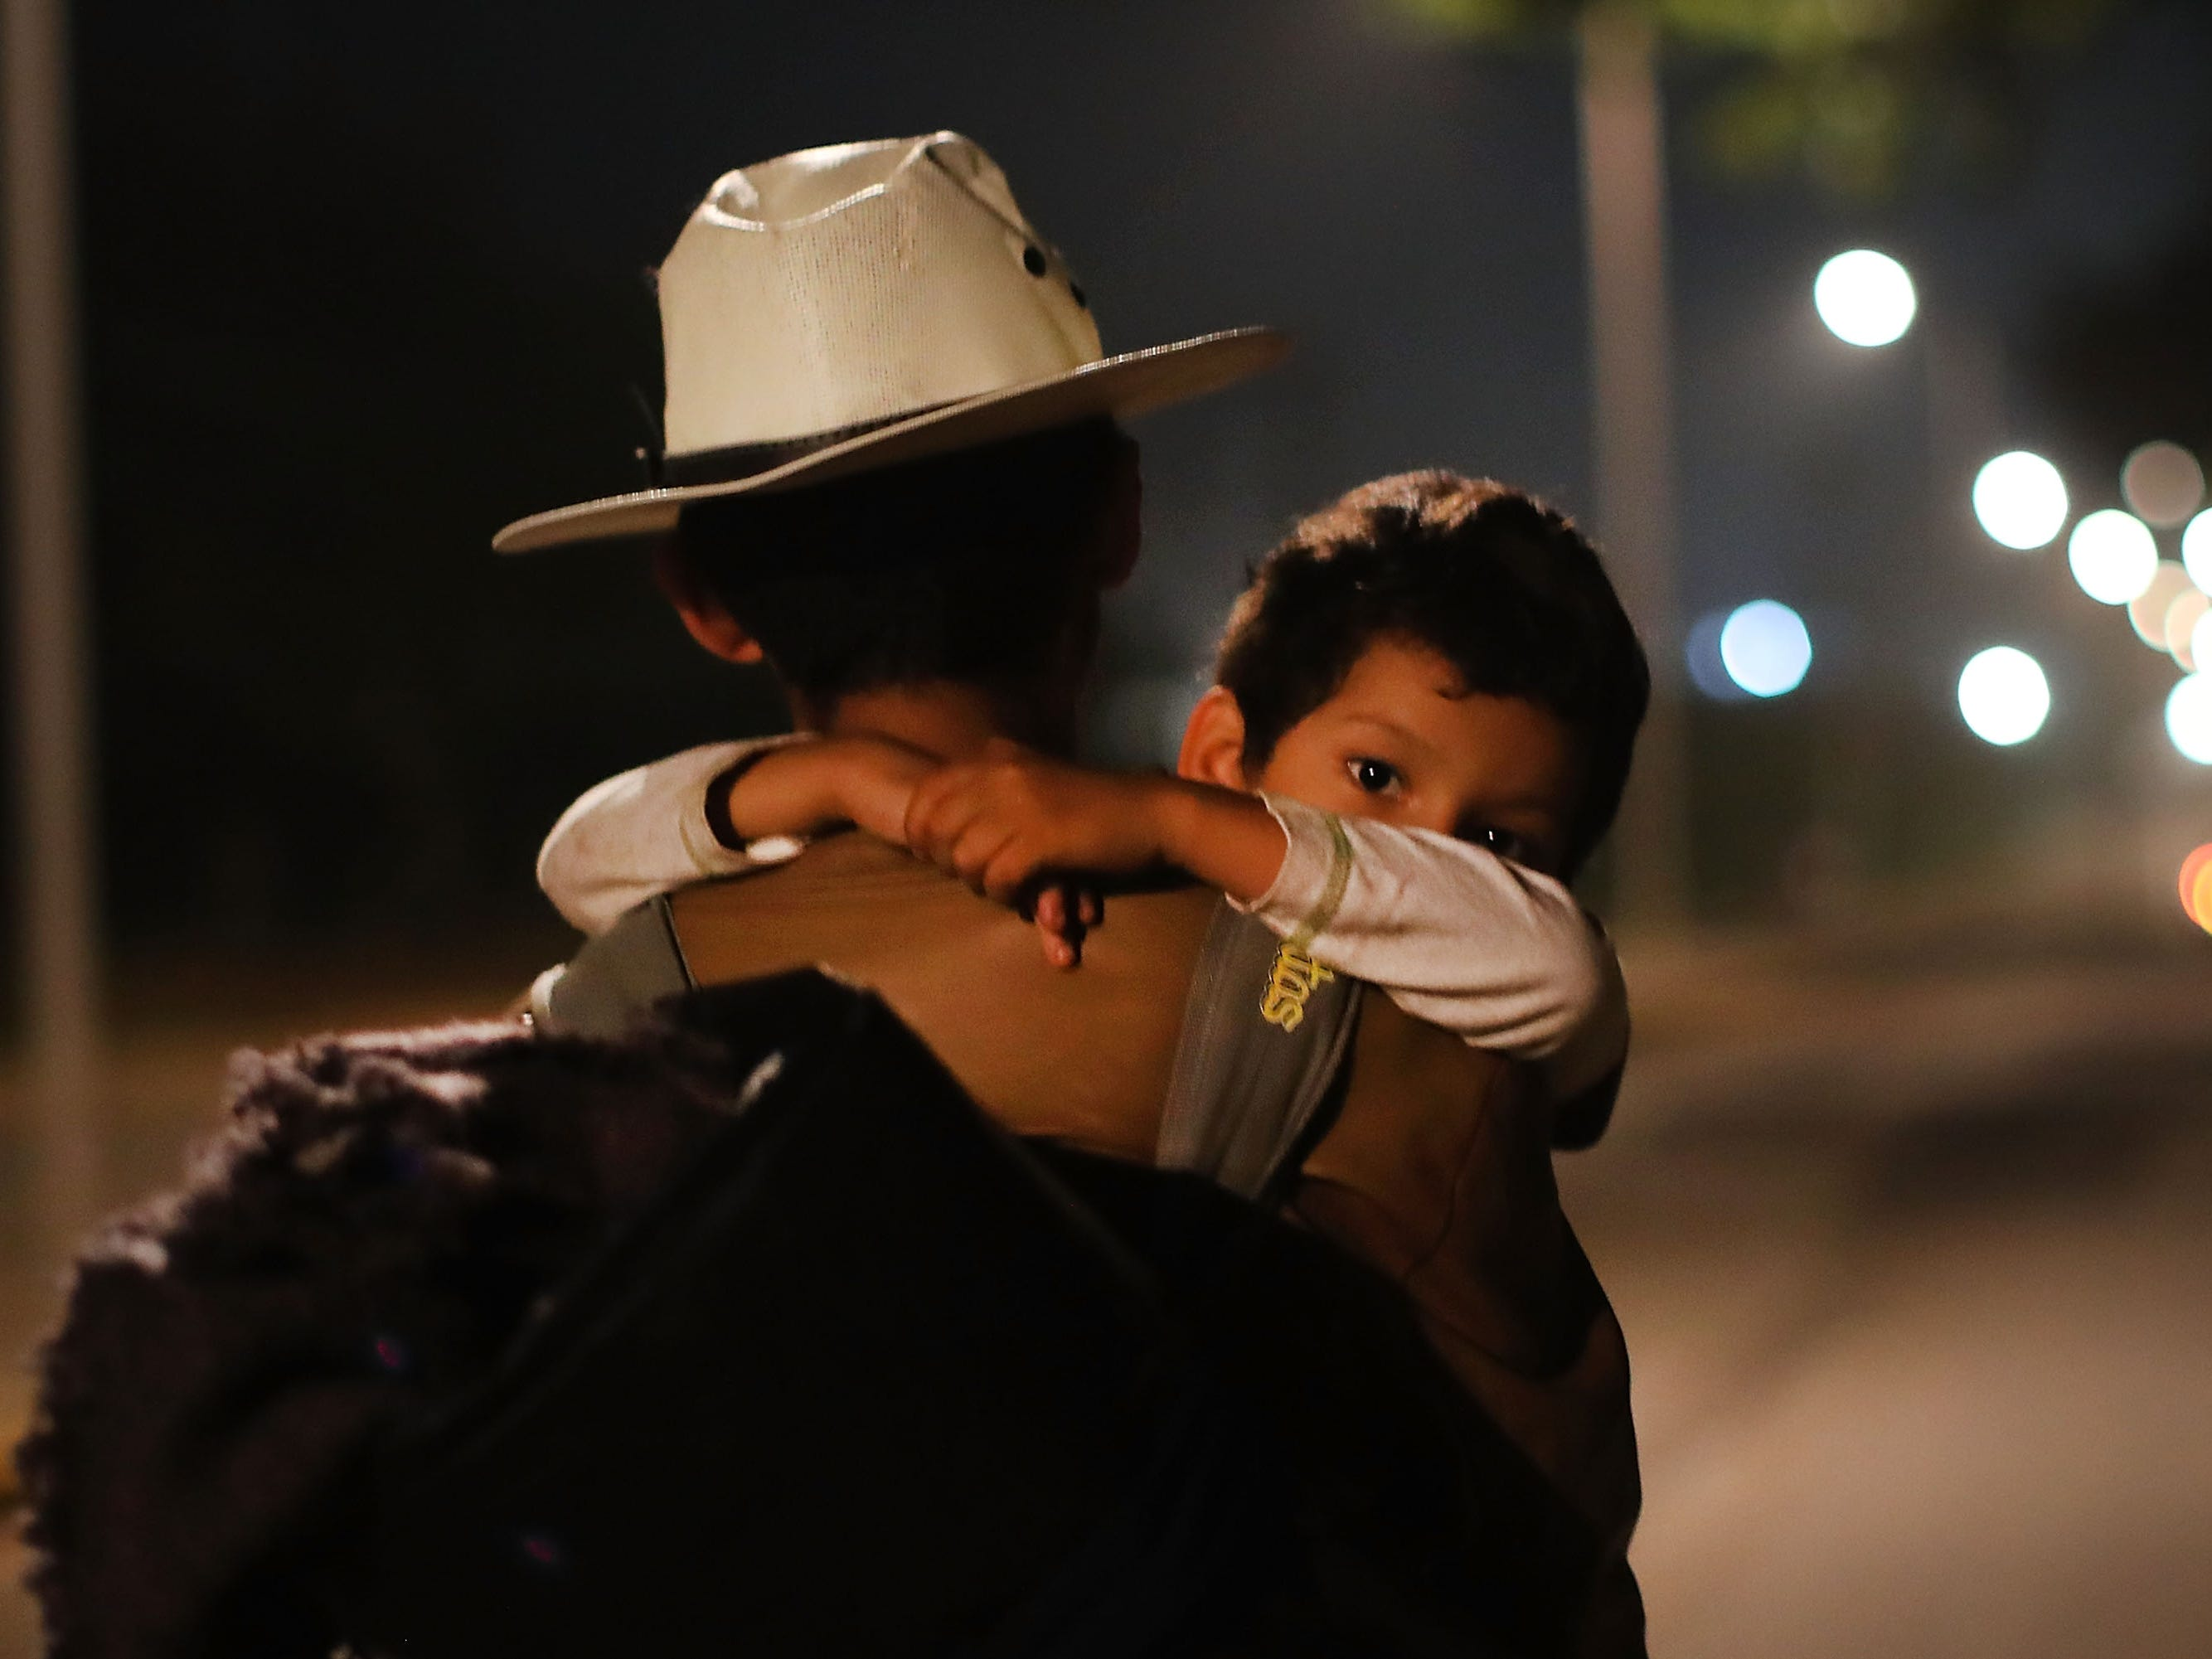 Hundreds of members of the Central American migrant caravan move in the early hours toward their next destination on Nov. 04, 2018, in Isla, Mexico. The group of migrants, many of them fleeing violence in their home countries, last took a rest day on Wednesday and have resumed their march to the United States border. As fatigue from the heat, distance and poor sanitary conditions has set in, the number of people participating in the march has slowly dwindled, but a significant group are still determined to get to the United Sates. The U.S. will deploy more than 5,000 active-duty troops to the U.S.-Mexico border in an effort to prevent members of the migrant caravan from illegally entering the country.